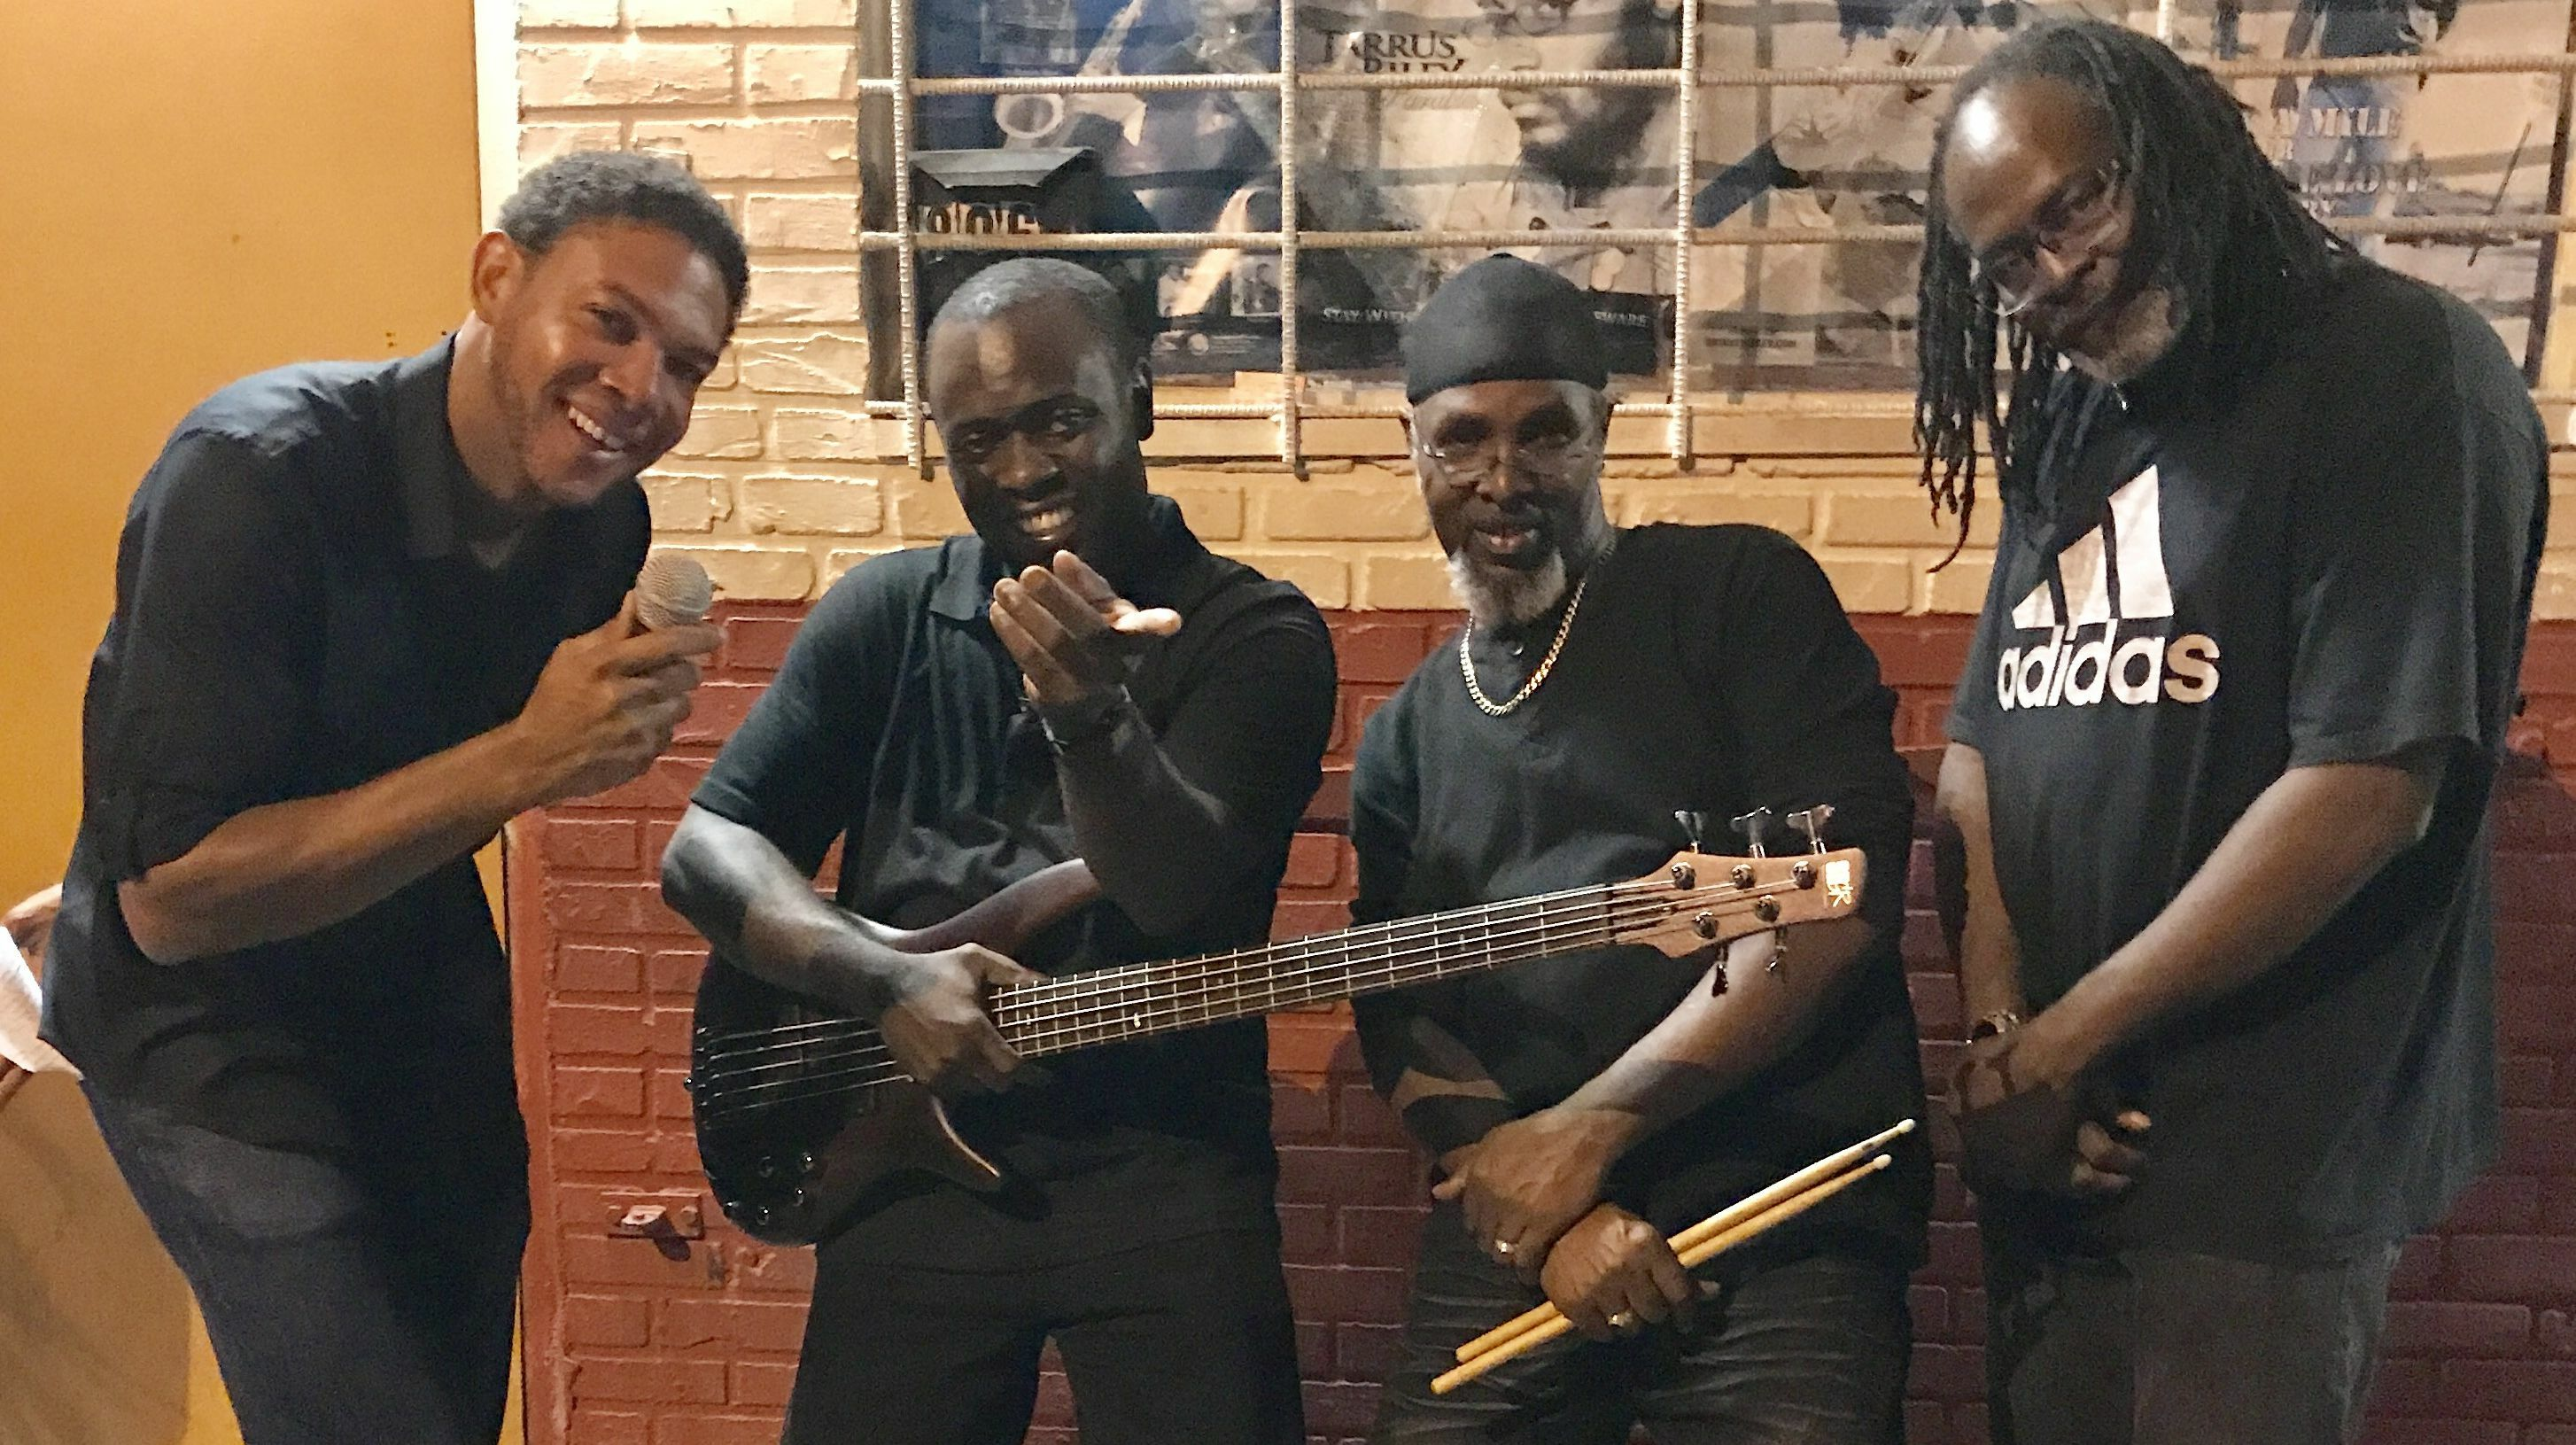 The Ifrolix Band Live in Florida -- Online Concert